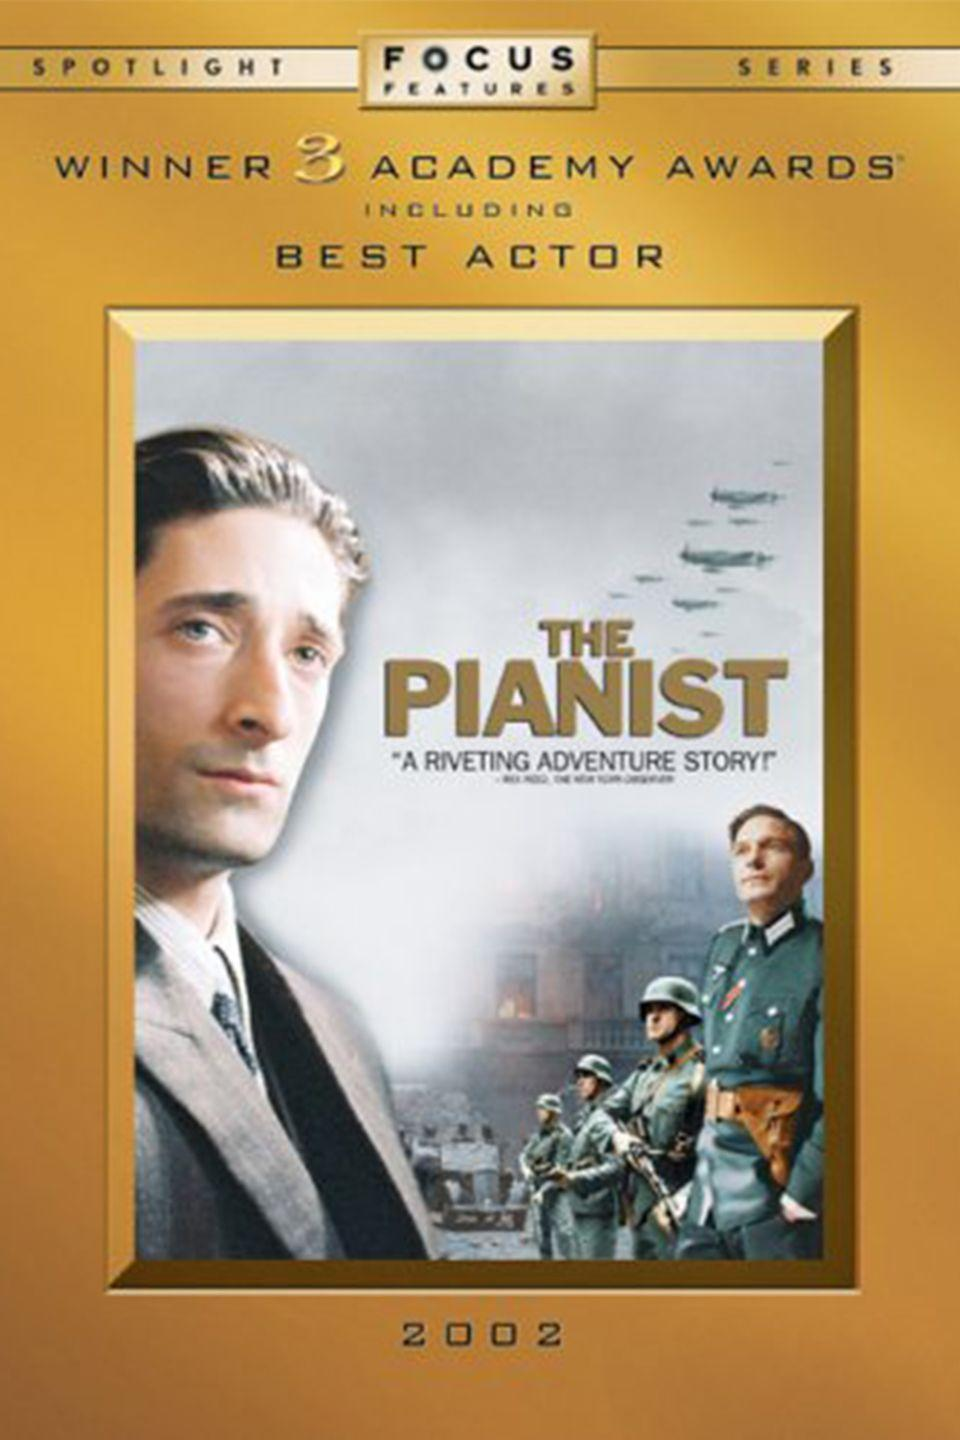 """<p><a class=""""link rapid-noclick-resp"""" href=""""https://www.amazon.com/Pianist-Adrien-Brody/dp/B000FVQLRA/?tag=syn-yahoo-20&ascsubtag=%5Bartid%7C10063.g.35716832%5Bsrc%7Cyahoo-us"""" rel=""""nofollow noopener"""" target=""""_blank"""" data-ylk=""""slk:Watch Now"""">Watch Now</a> </p><p>An adaptation of Wladyslaw Szpilman's autobiography, <em>The Pianist</em> follows a glamorous Jewish musician who is forced into the Warsaw Ghetto, separated from his family, and made to hide in various locations in the city's ruins during the German occupation of Poland during World War II.</p>"""